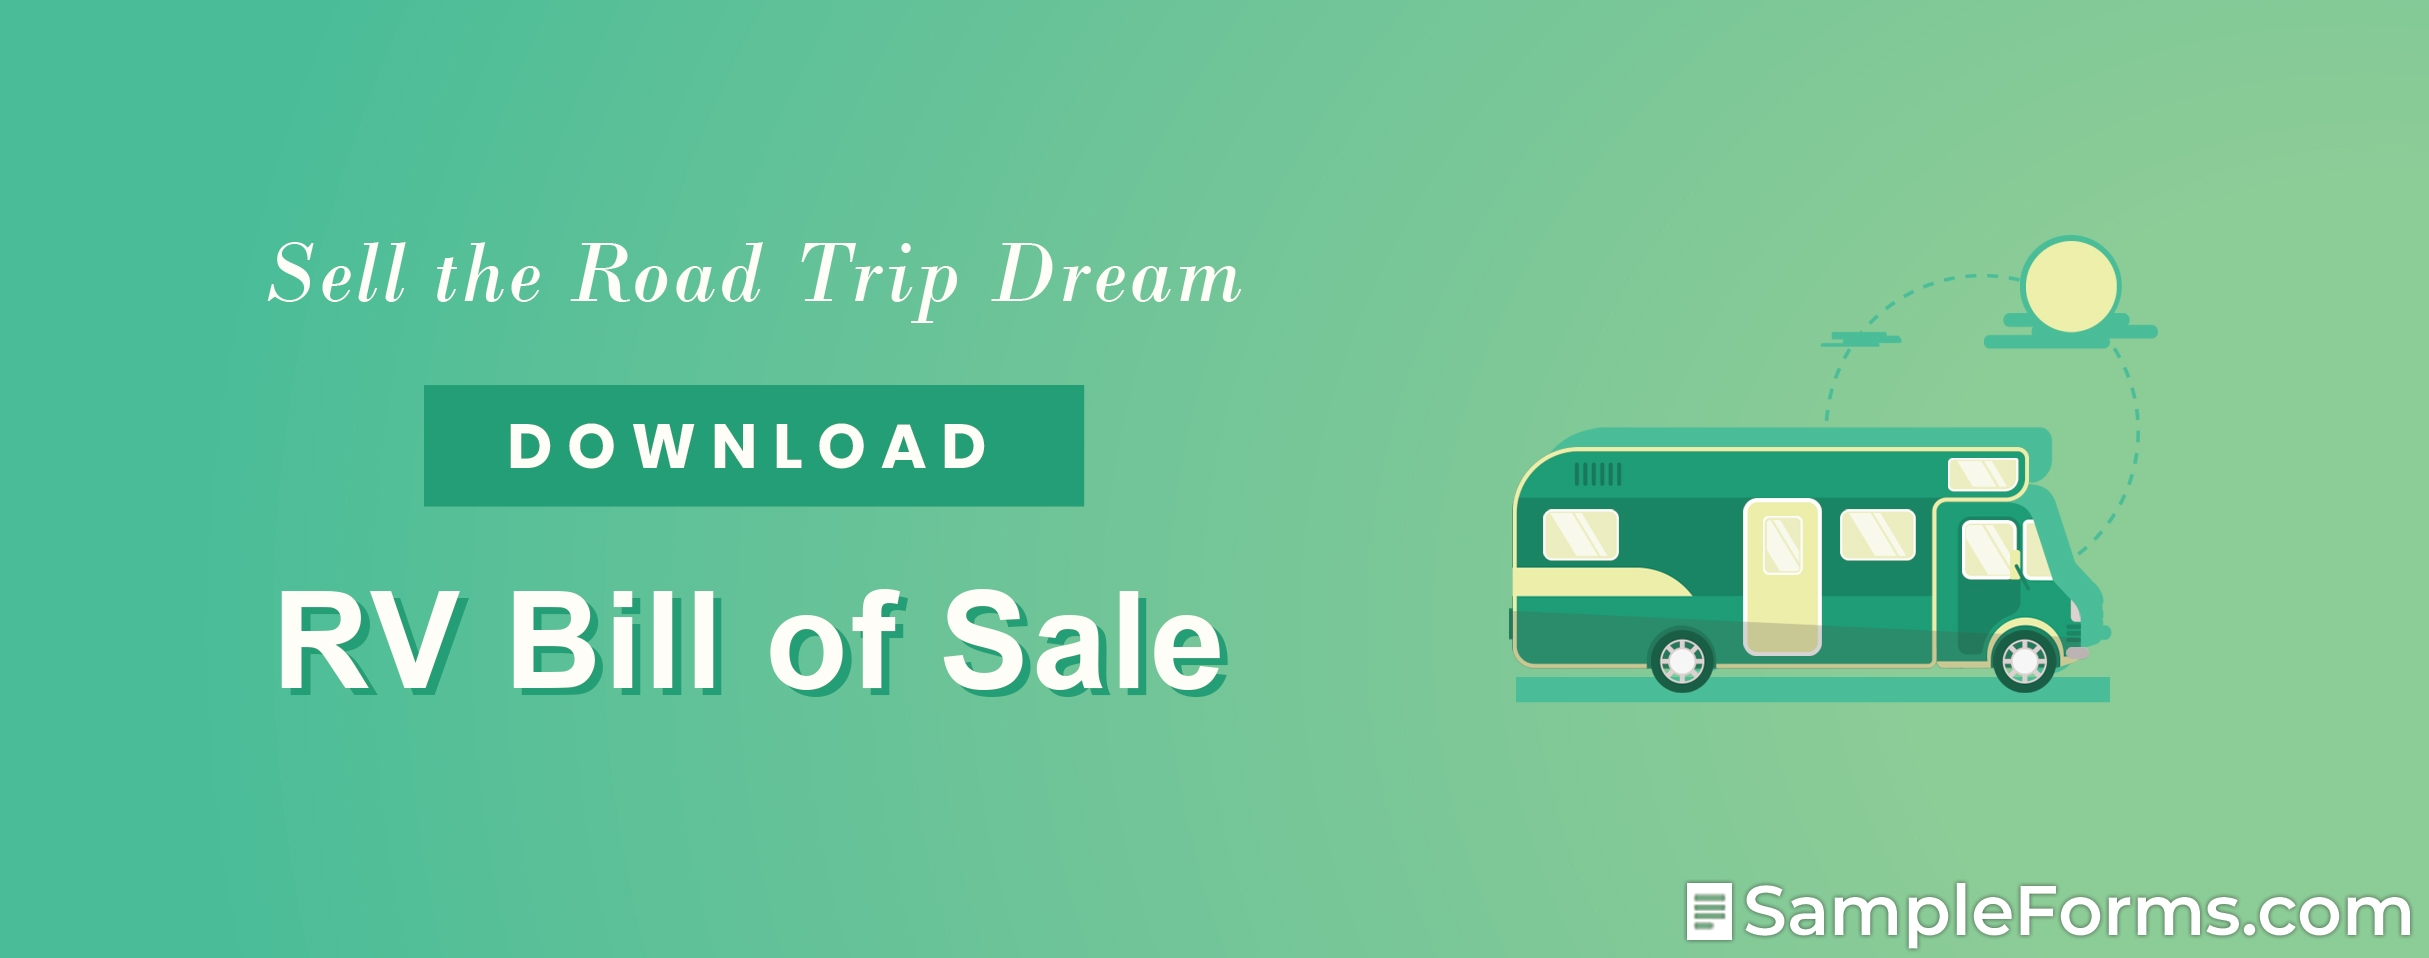 RV Bill of Sale Form1